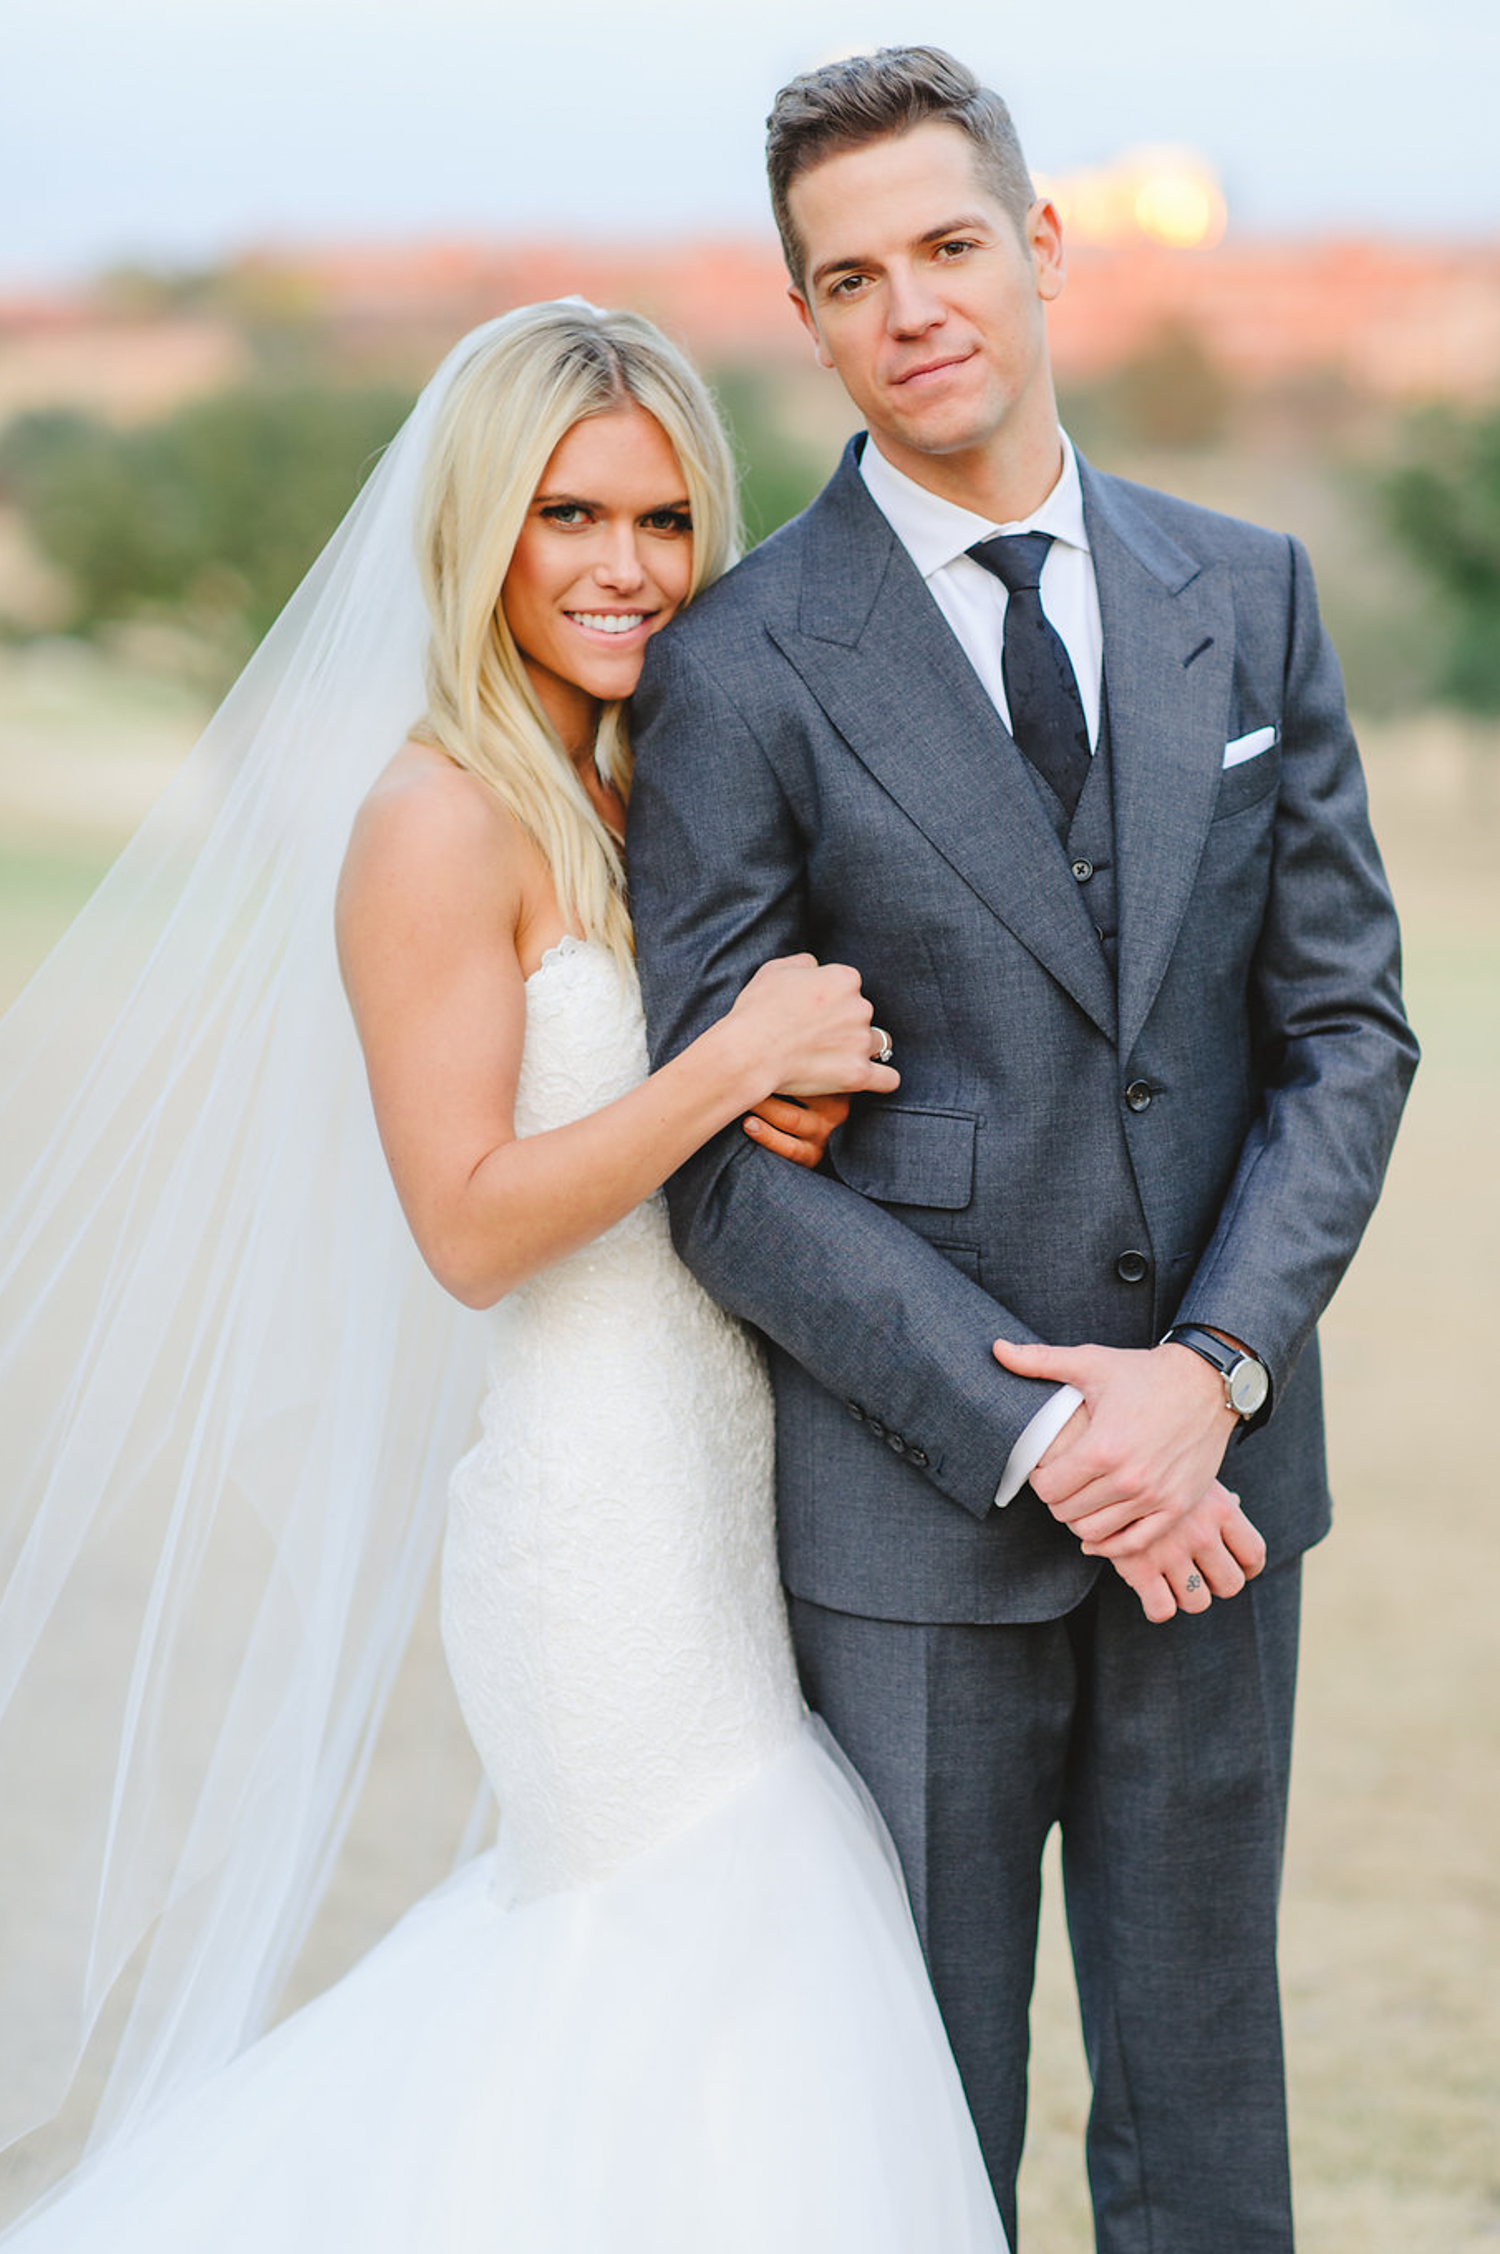 JasonKennedy.LaurenScruggs.DallasWedding28.jpg